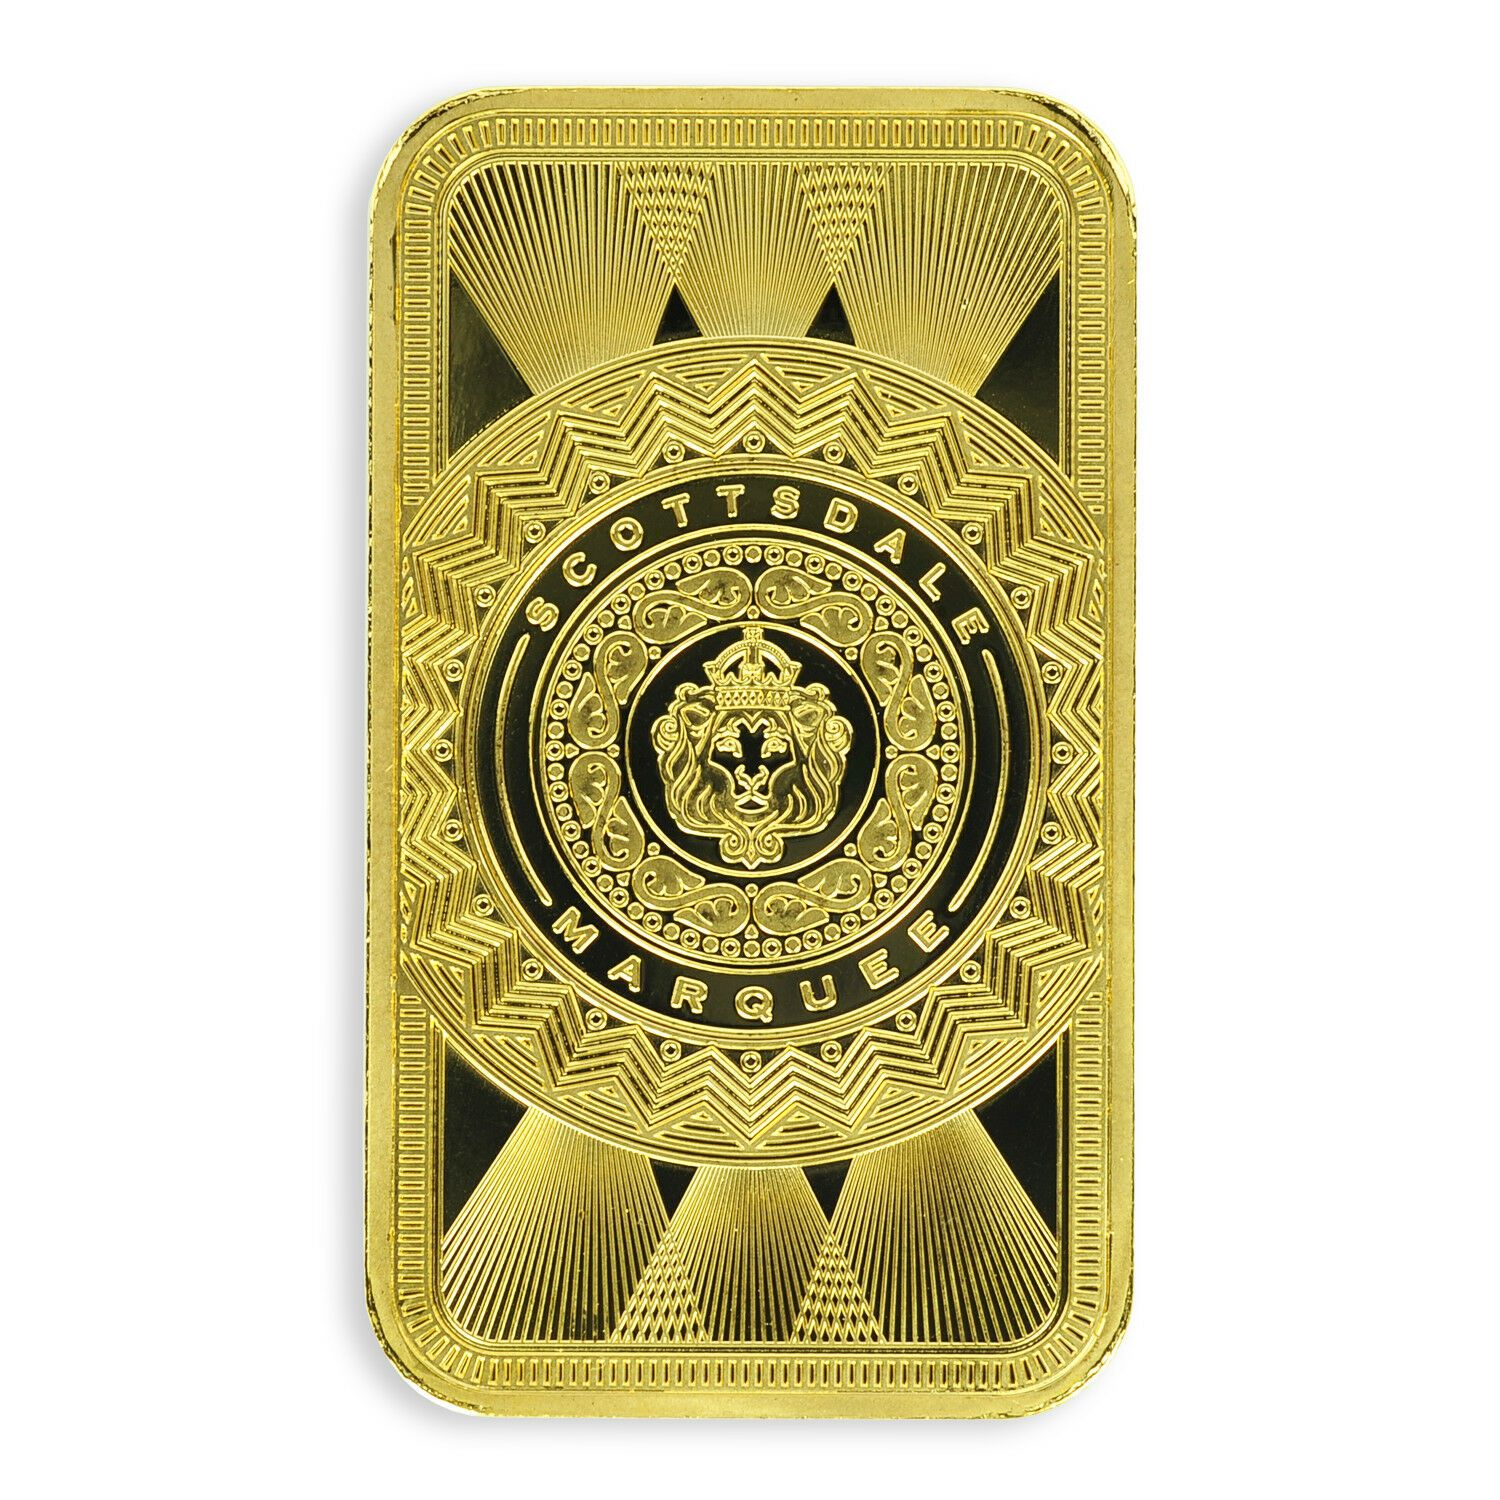 Special Price 1 Oz 9999 Gold Bar Scottsdale Marquee In Certi Lock A453 Ebay In 2020 Gold Bar Gold Cost Gold Ounce